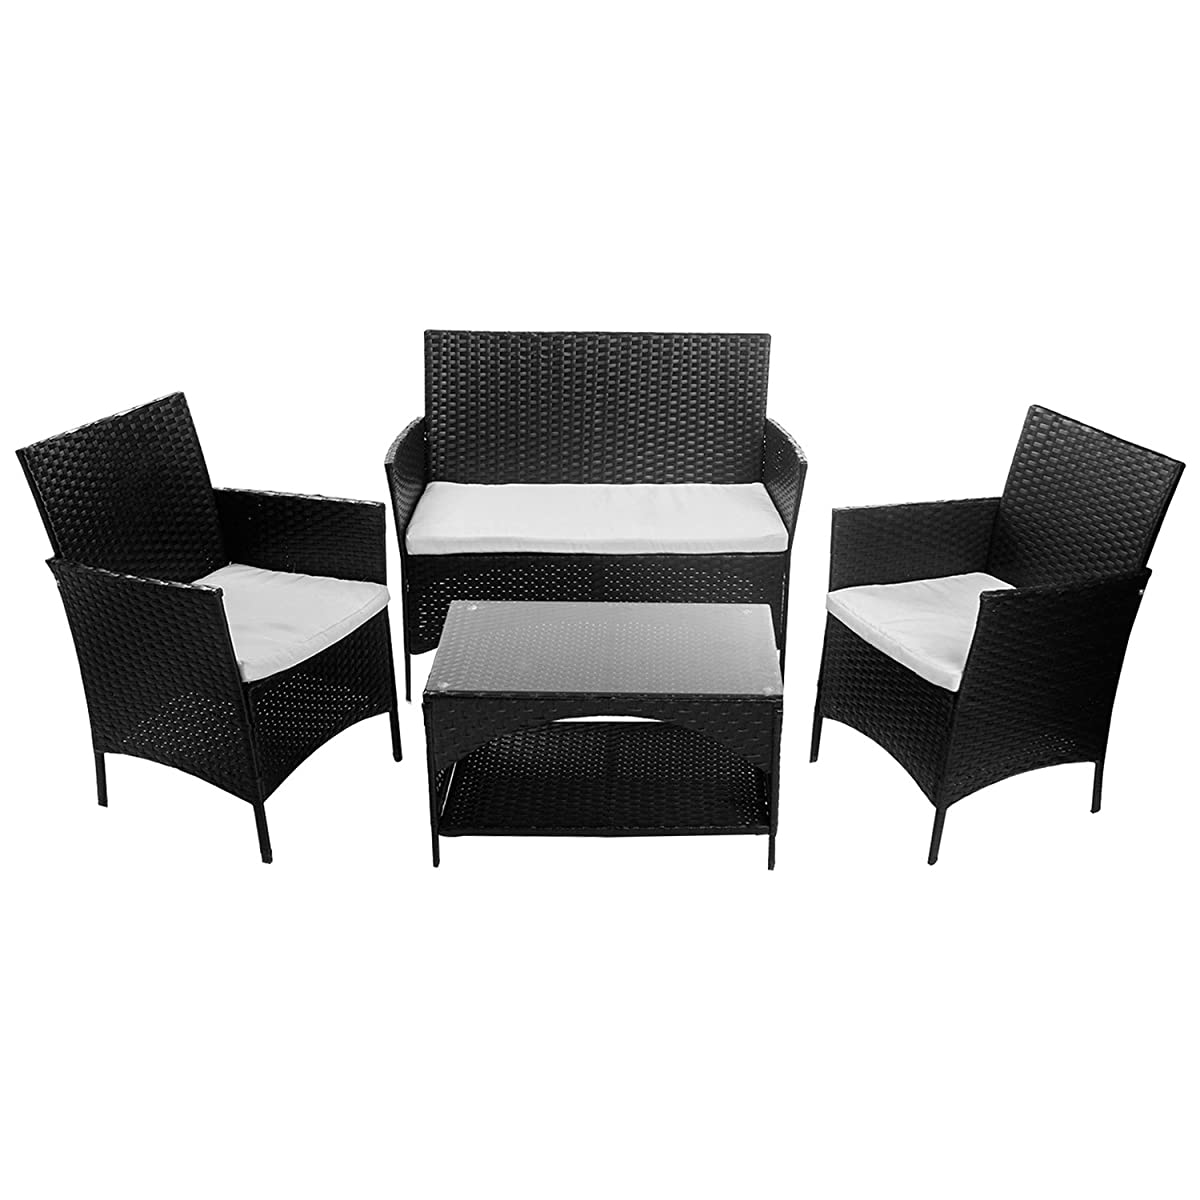 Superb Merax 4 Piece Outdoor Pe Rattan Wicker Sofa And Chairs Set Home Interior And Landscaping Ologienasavecom